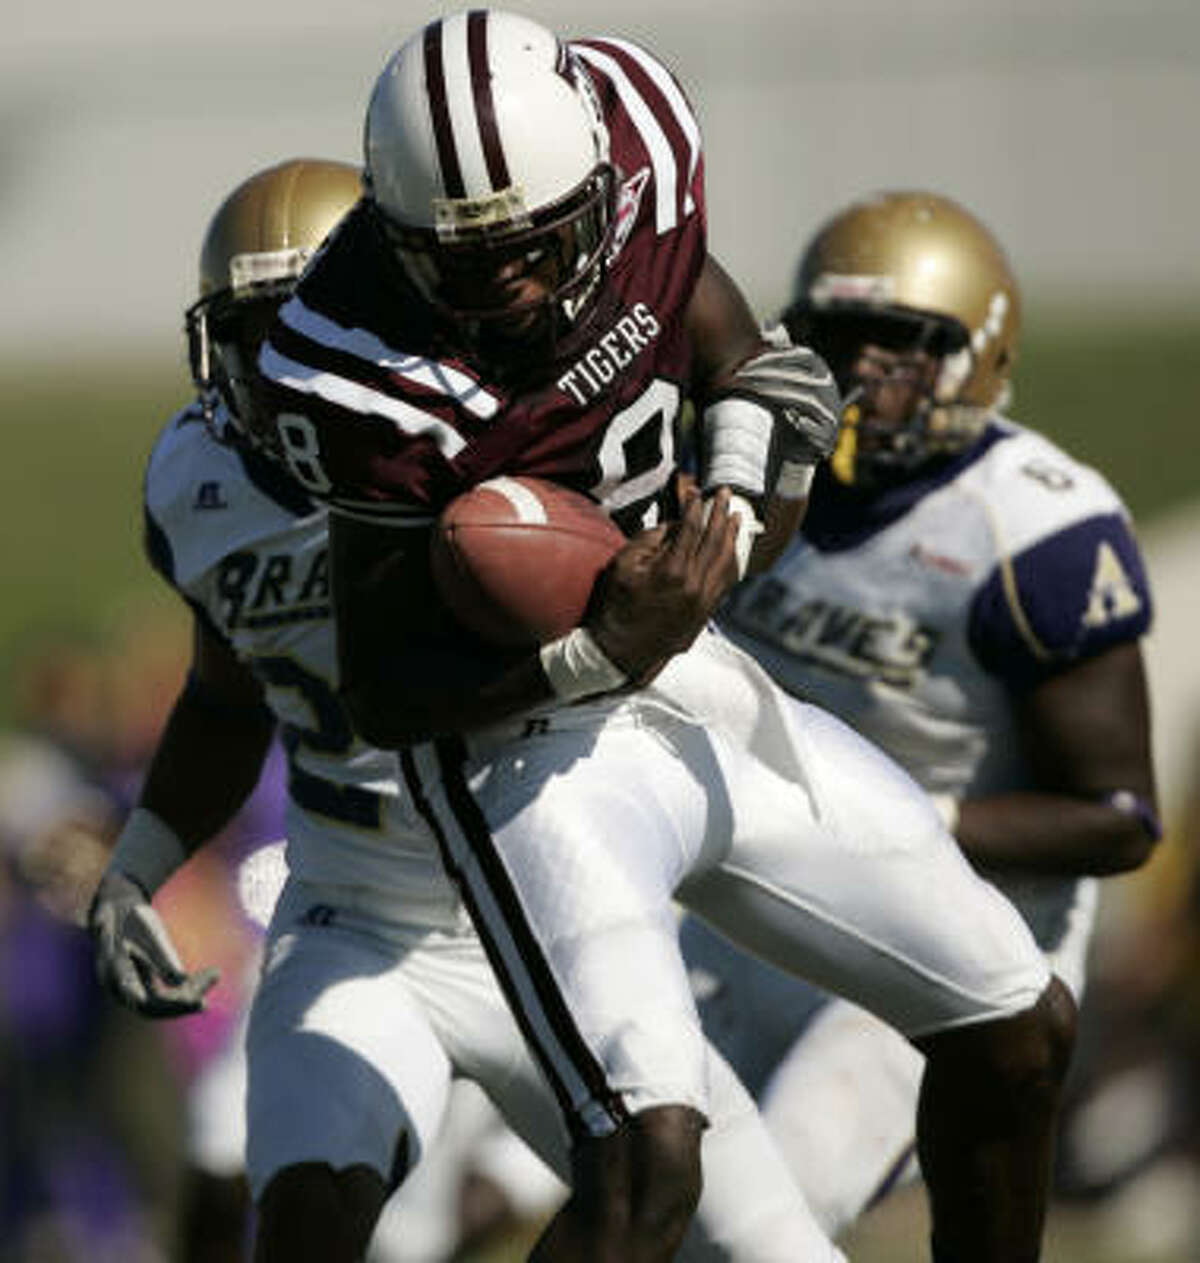 Texas Southern's Arvell Nelson tries to maintain possesion as Alcorn State's Kirderra Hall barrels in for a sack.